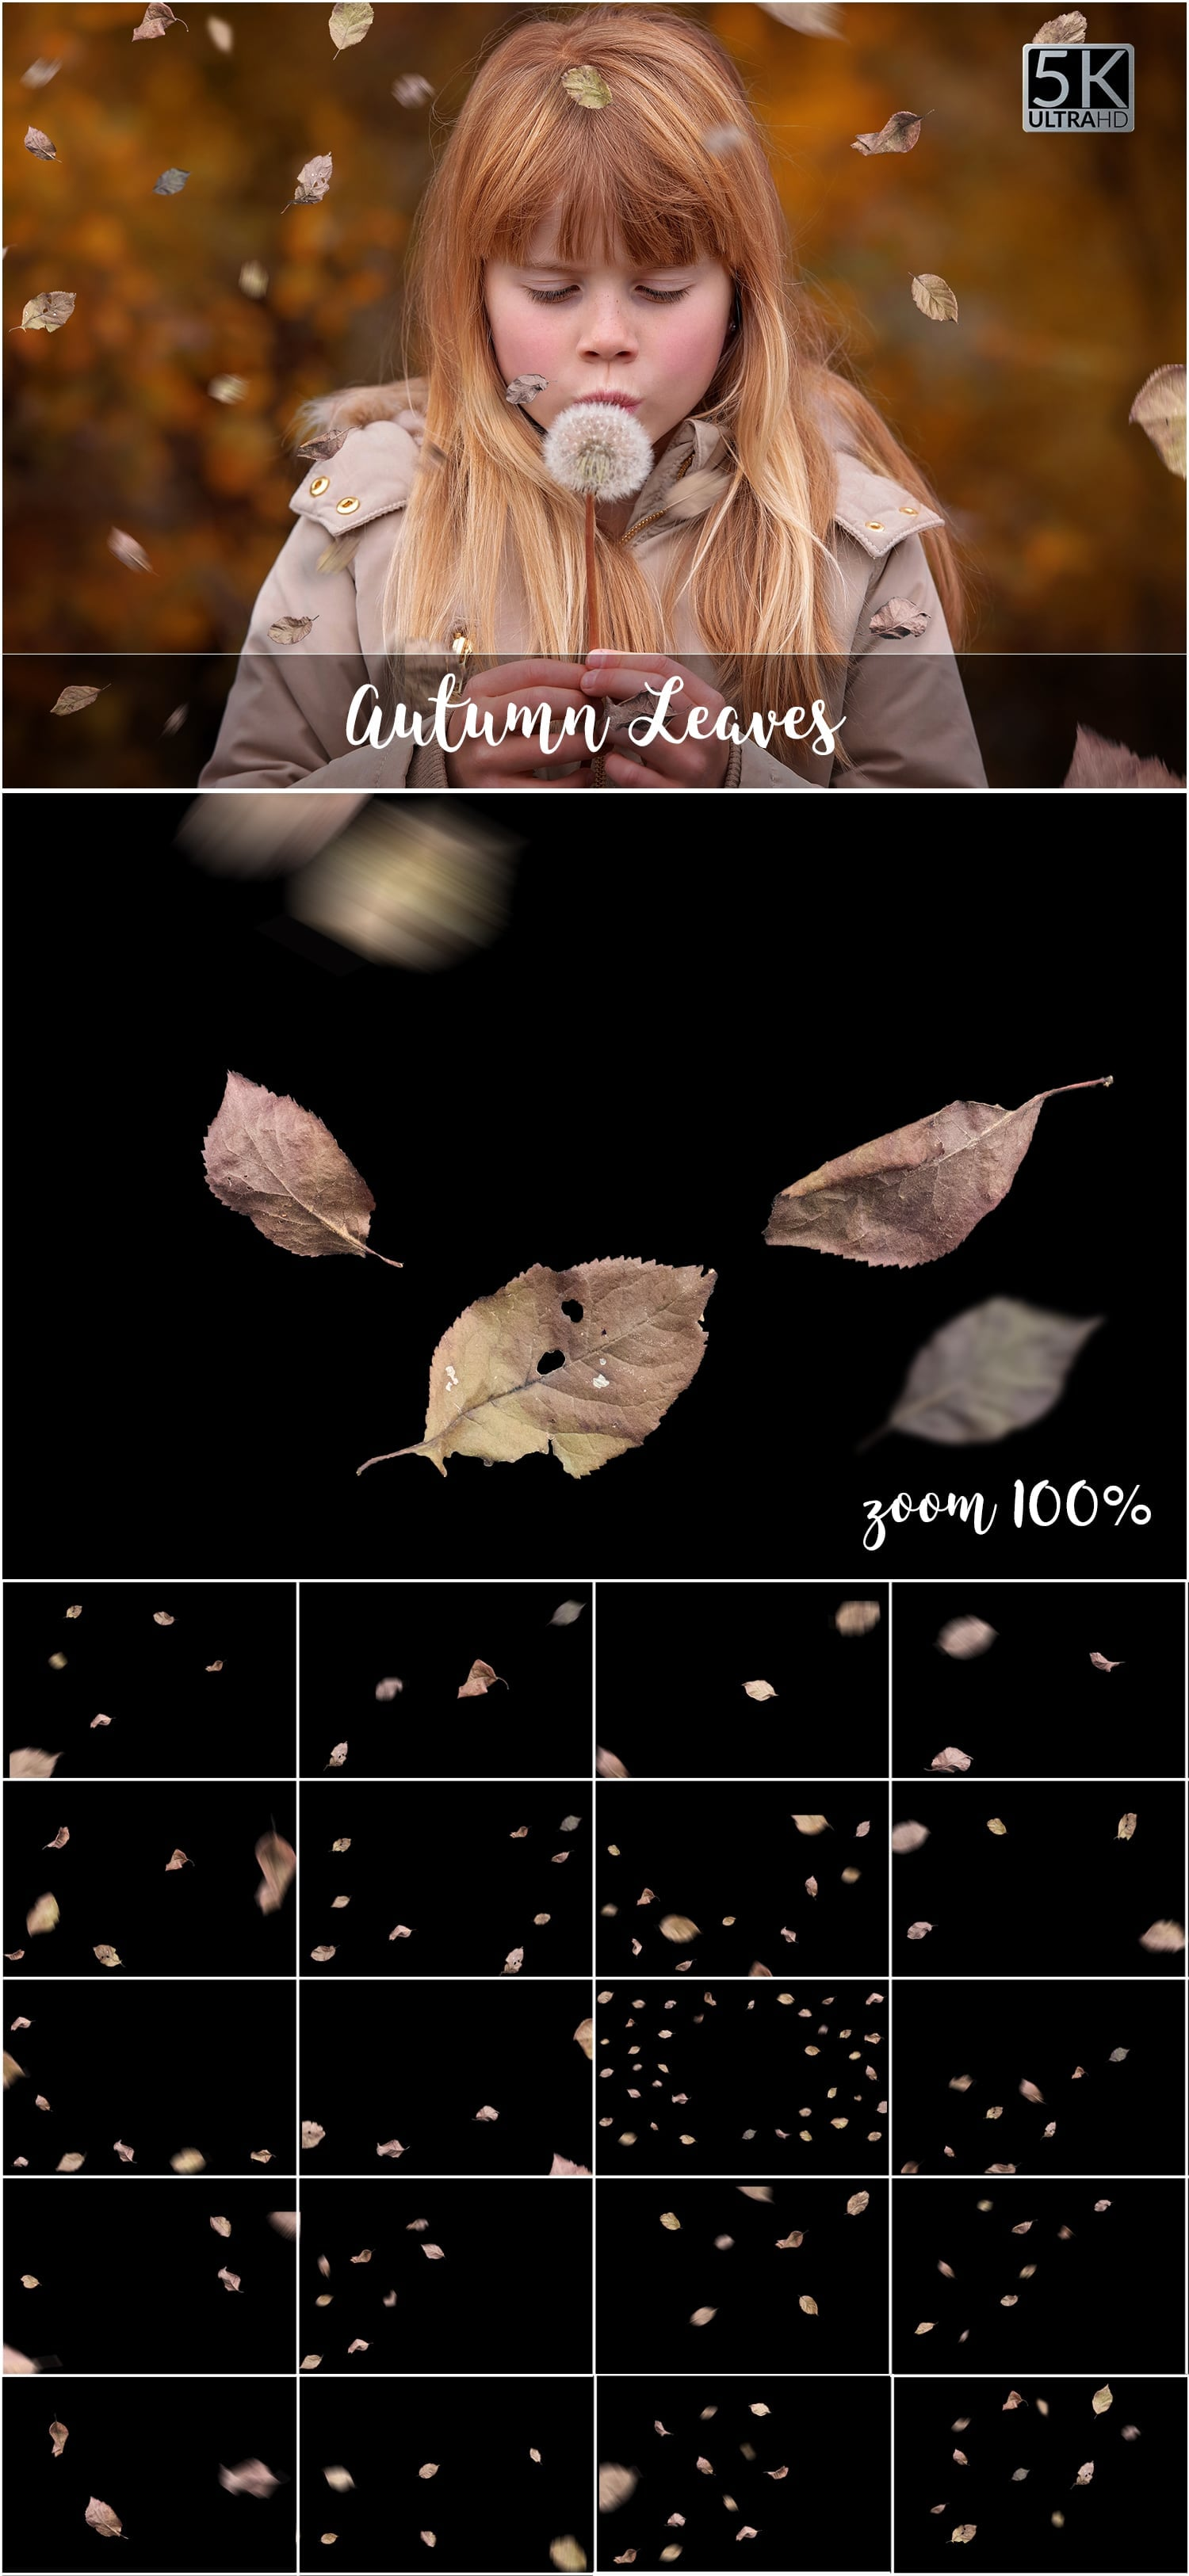 Over 11 400 Aesthetic Overlays Bundle SPECIAL OFF 98% - 71 Autumn Leaves min